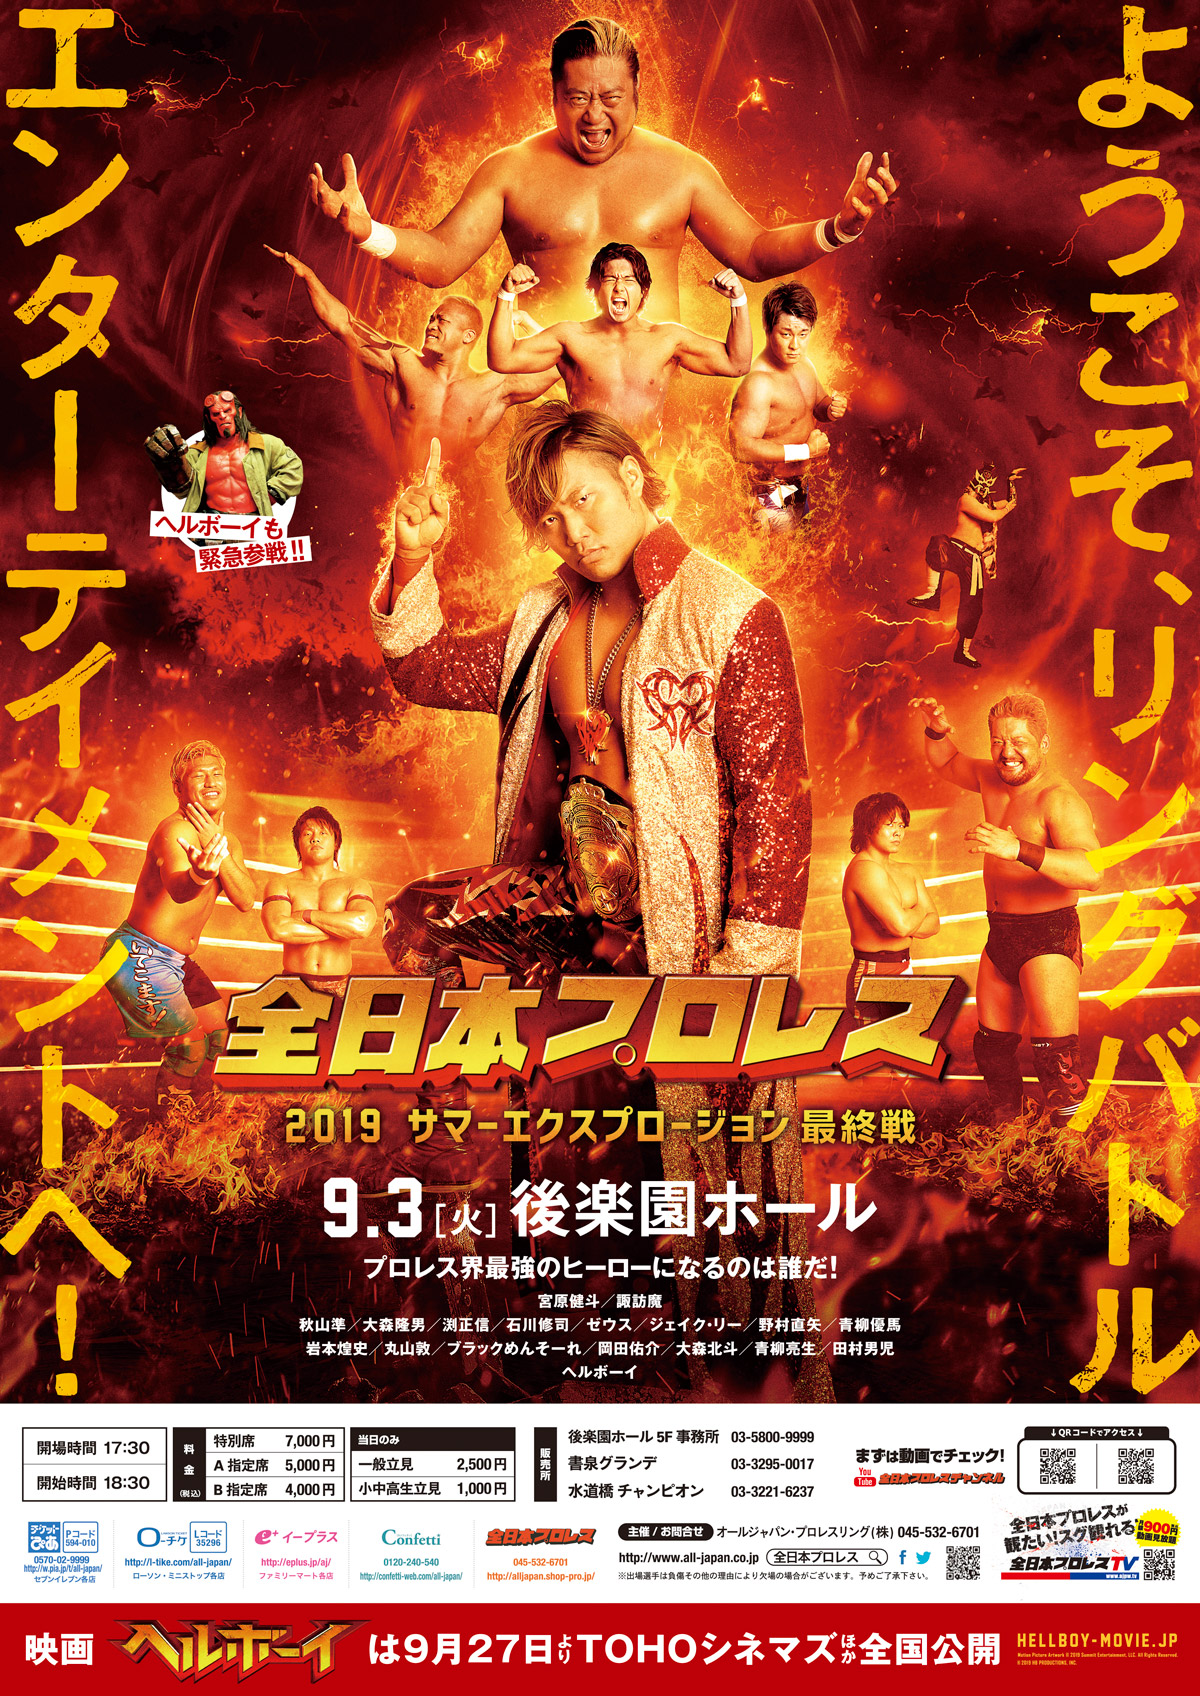 AJPW Summer Explosion Series 2019 - Night 13